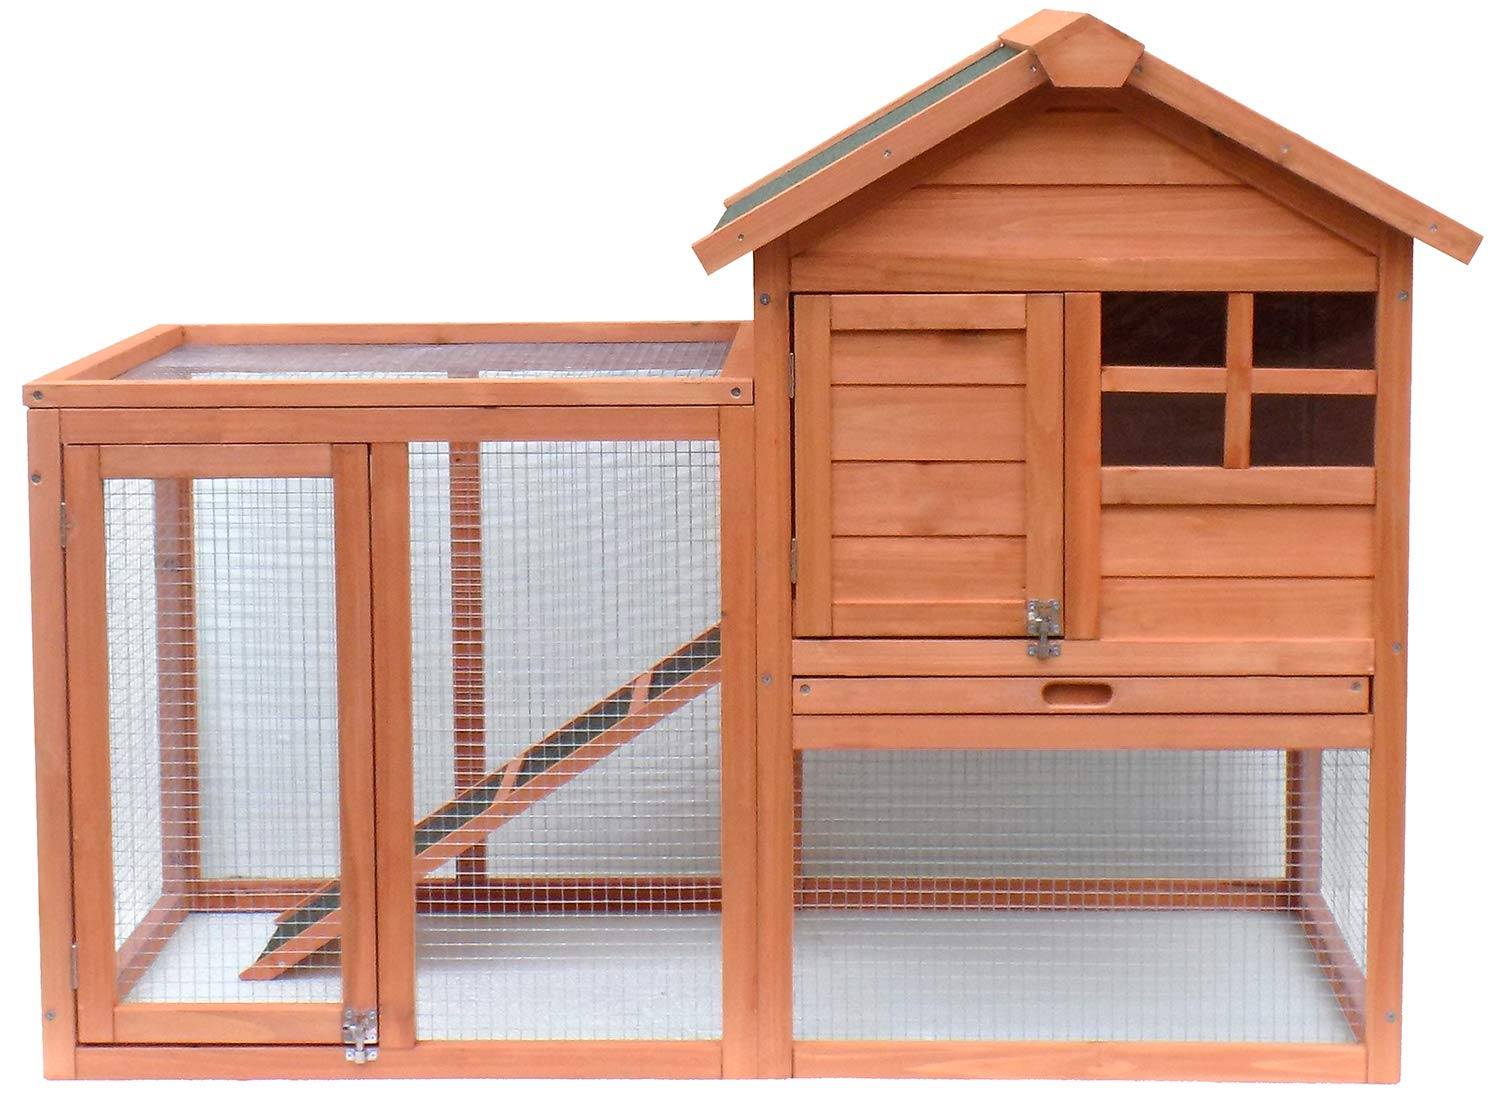 Danxee Two Floors 49'' Outdoor Indoor Roof Waterproof Bunny Hutch Guinea Pig Coop Pet Rabbit Hutch Wooden House for Small to Medium Animals with Stairs and Cleaning Tray (Natural Wood) by Danxee